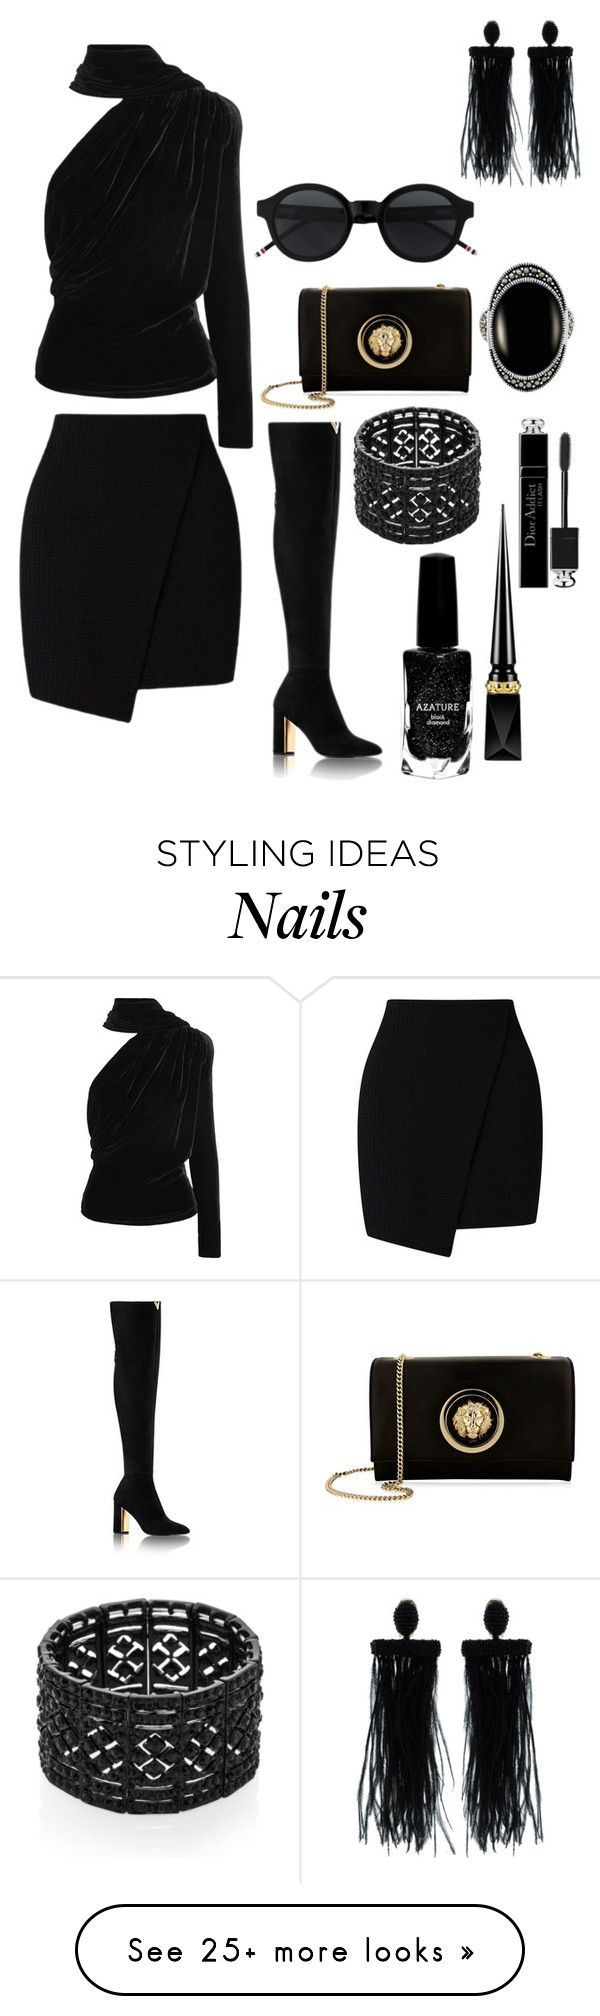 """All Black"" by dazzlers on Polyvore featuring Gareth Pugh, Miss Selfridge, Versus, Oscar de la Renta, Kenneth Jay Lane, Le Vieux, Azature, Christian Louboutin, Christian Dior and allblackoutfit"